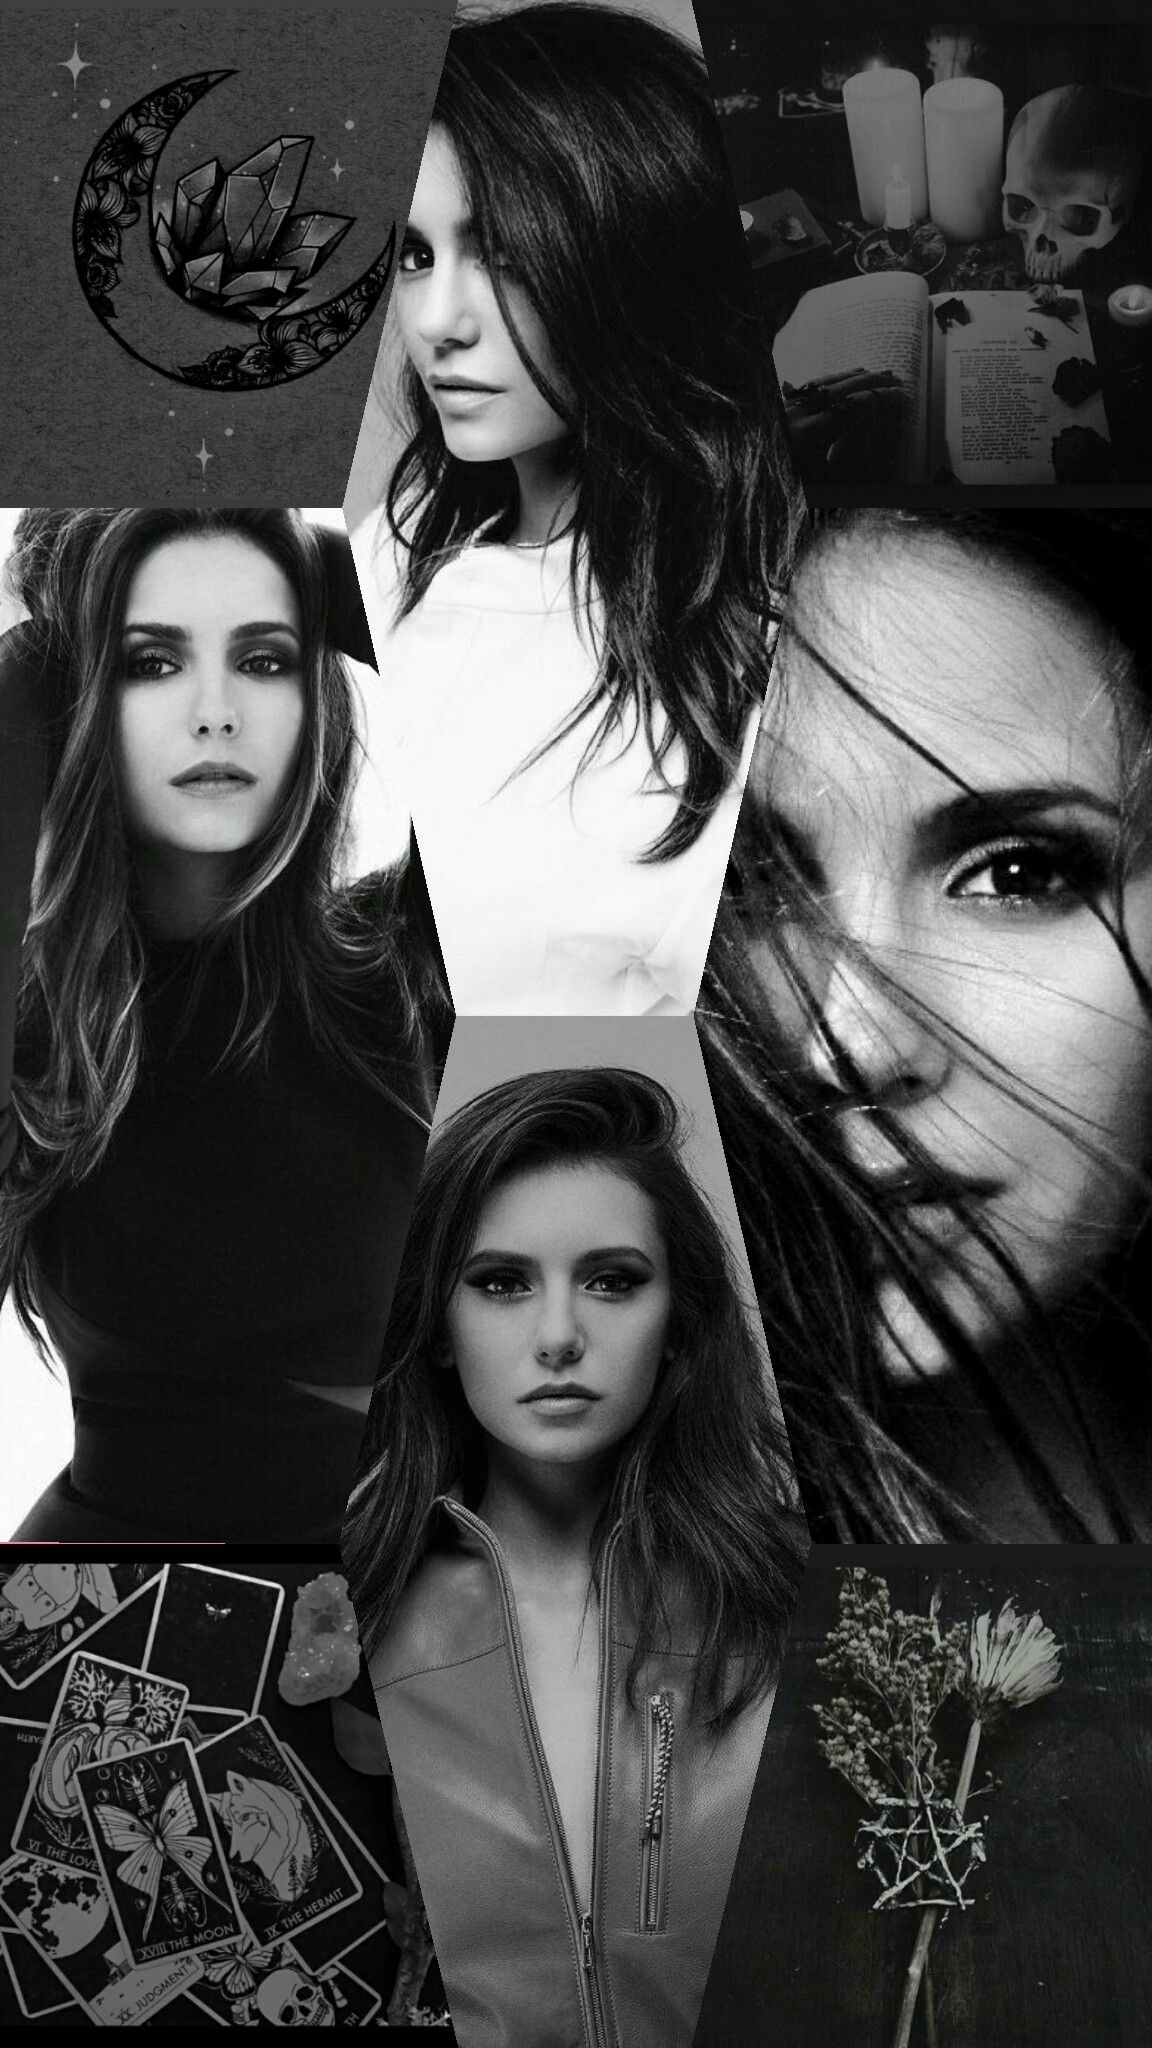 Nina Dobrev Wallpaper Ninadobrev Elina Tvd Vampirediaries Wallpaper Love Nina Dobrev Classic Hollywood Elena Gilbert